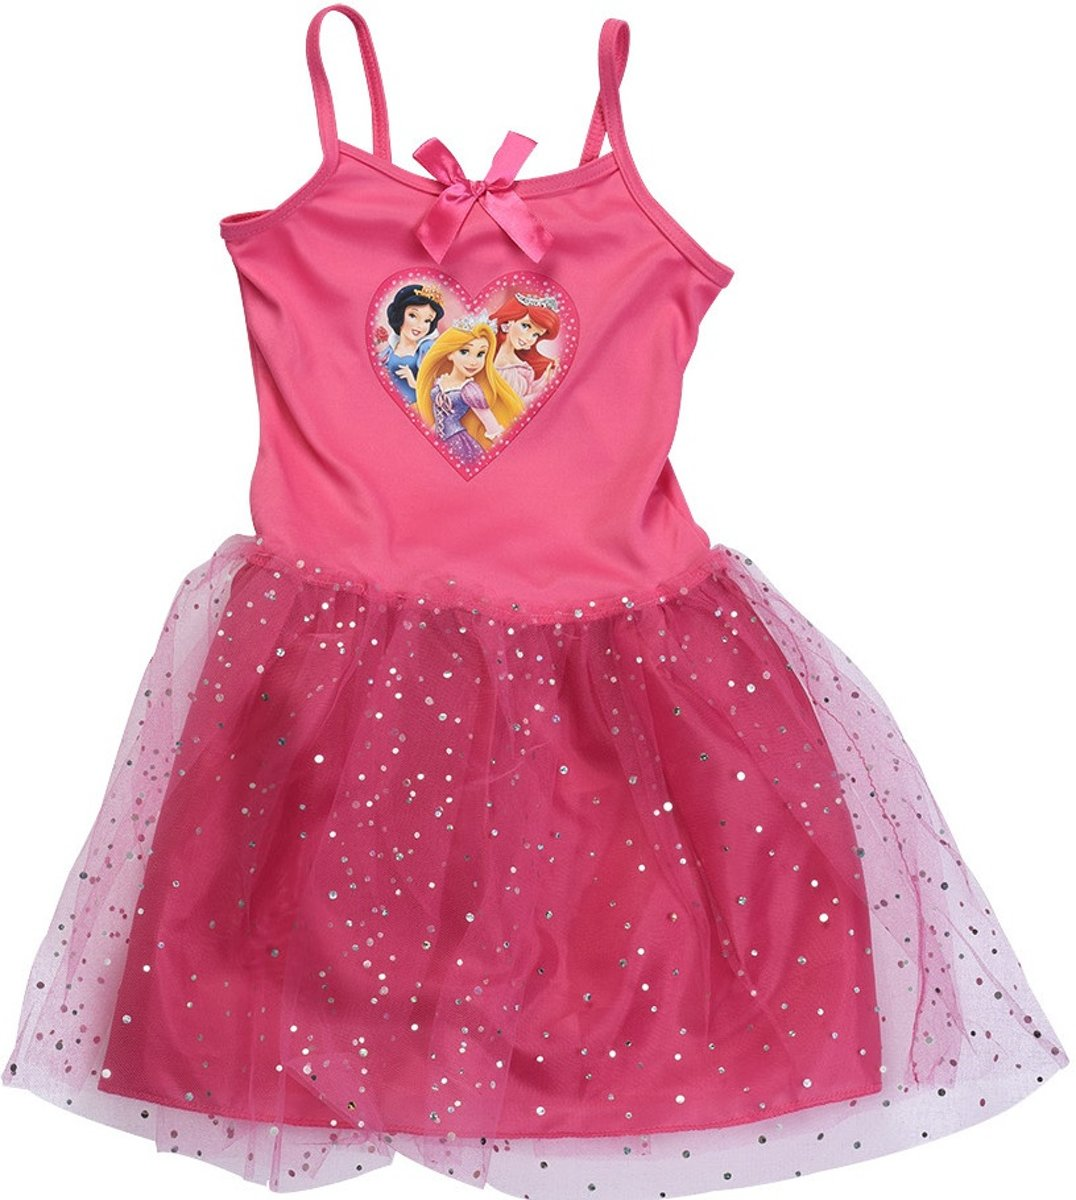 Free And Easy Tutu-jurk Disney Princess Roze Maat 110-116